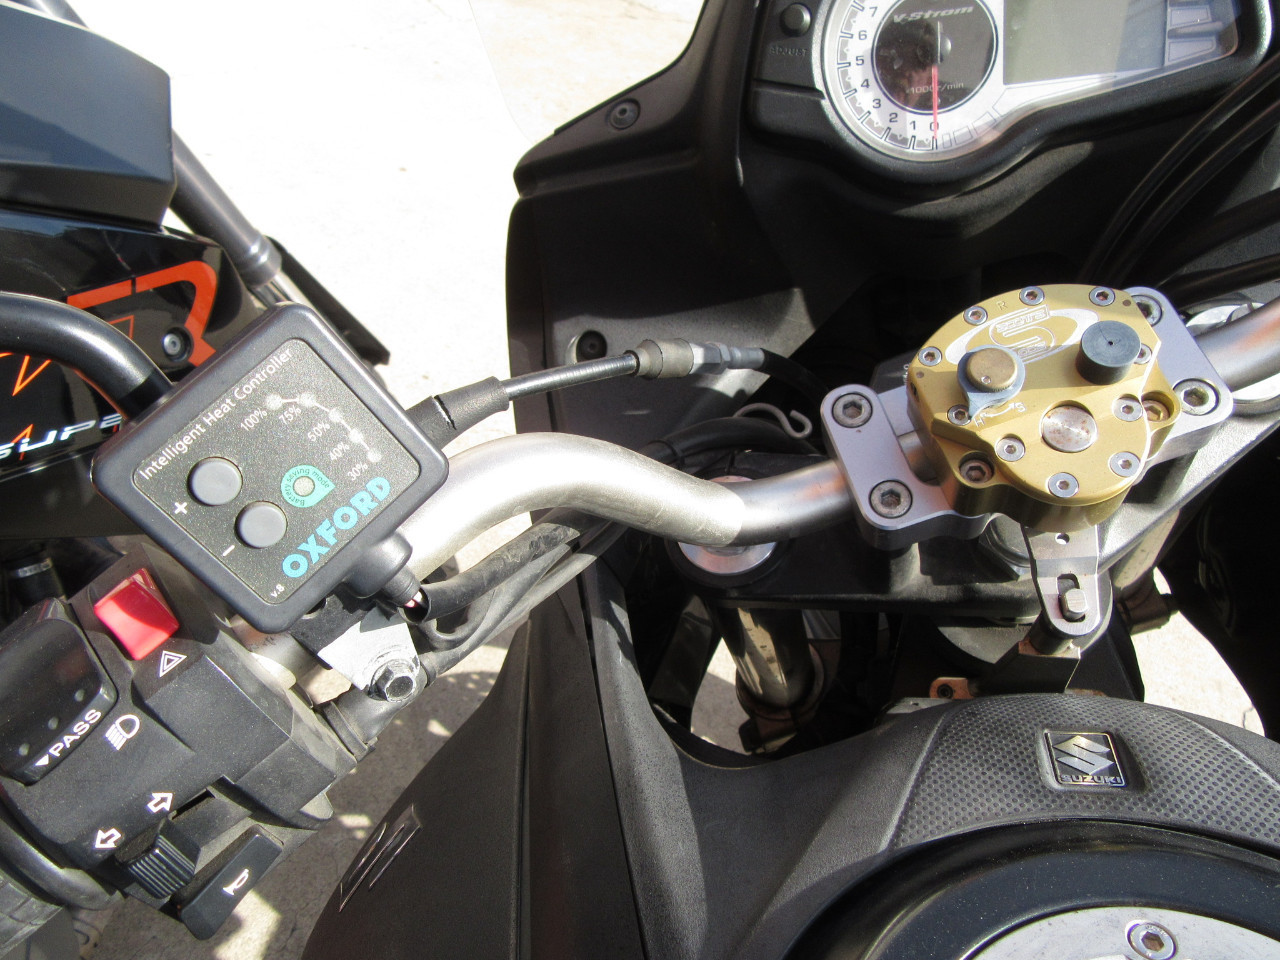 GP Motorcycles Bikes for Sale - Details